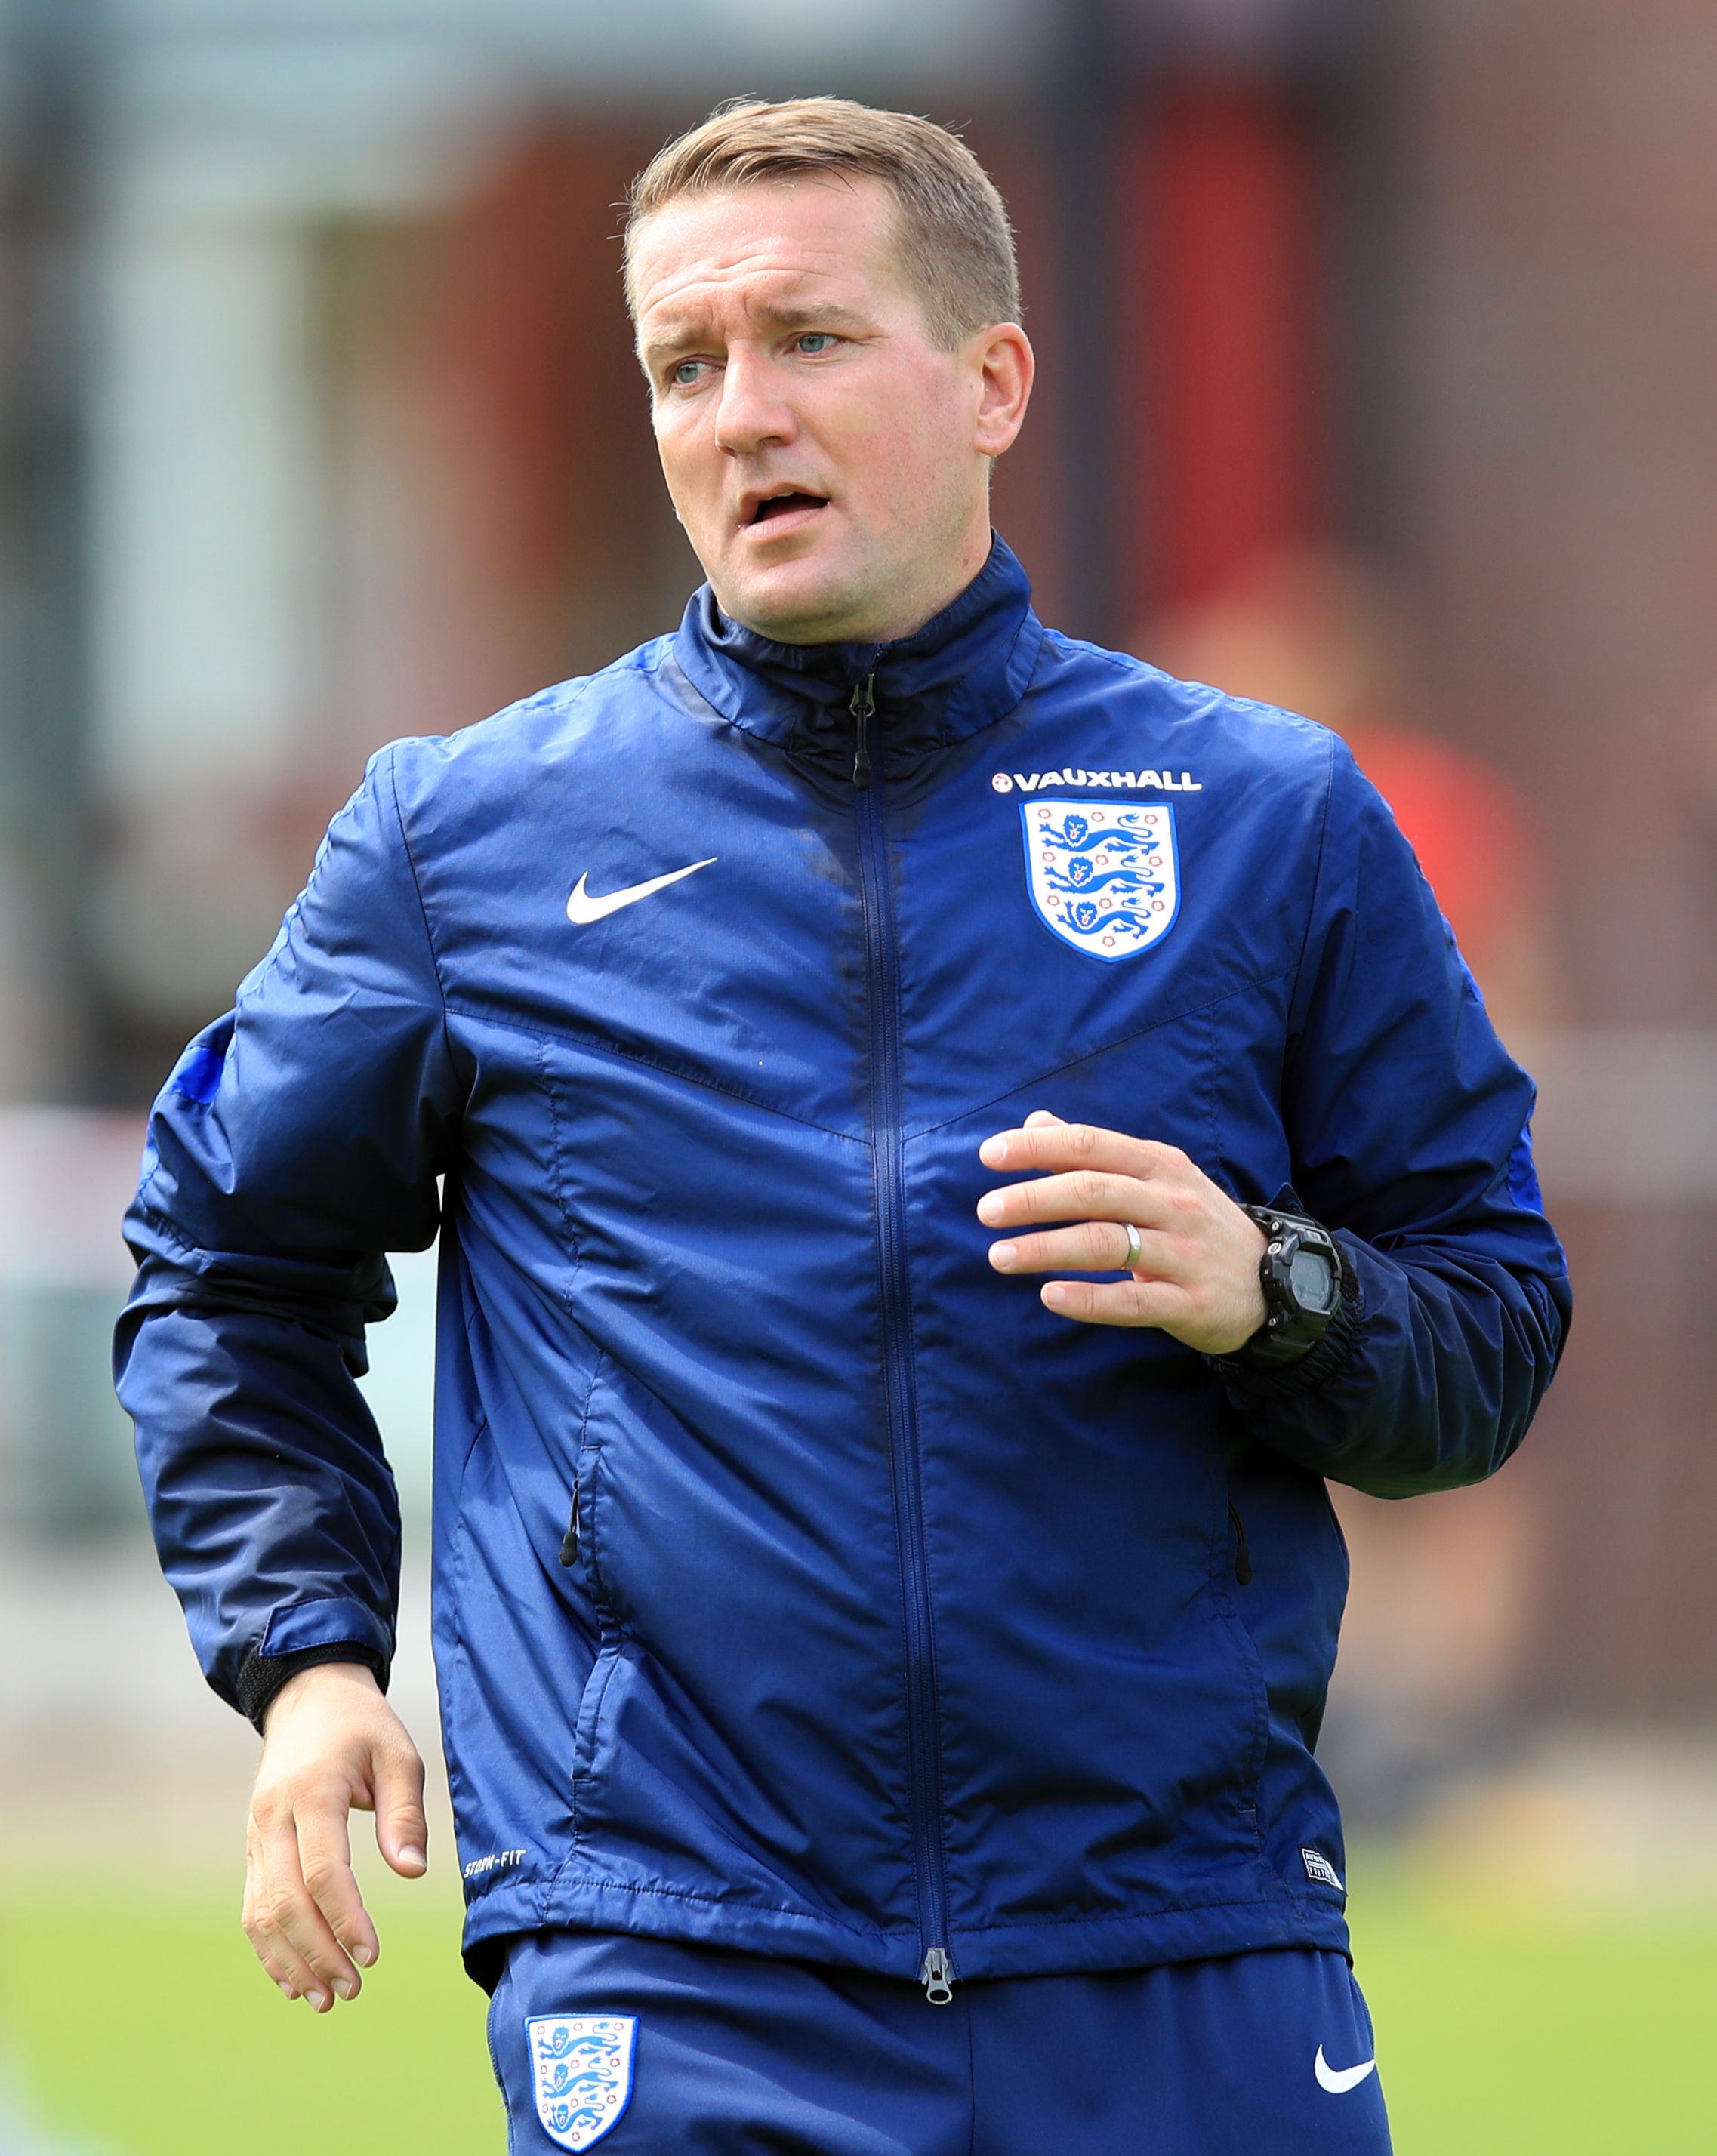 England Women's goalkeeping coach Lee Kendall, who was accused of speaking to Eniola Aluko in a Caribbean accent during her time with the national team. Picture: Mike Egerton/PA Wire